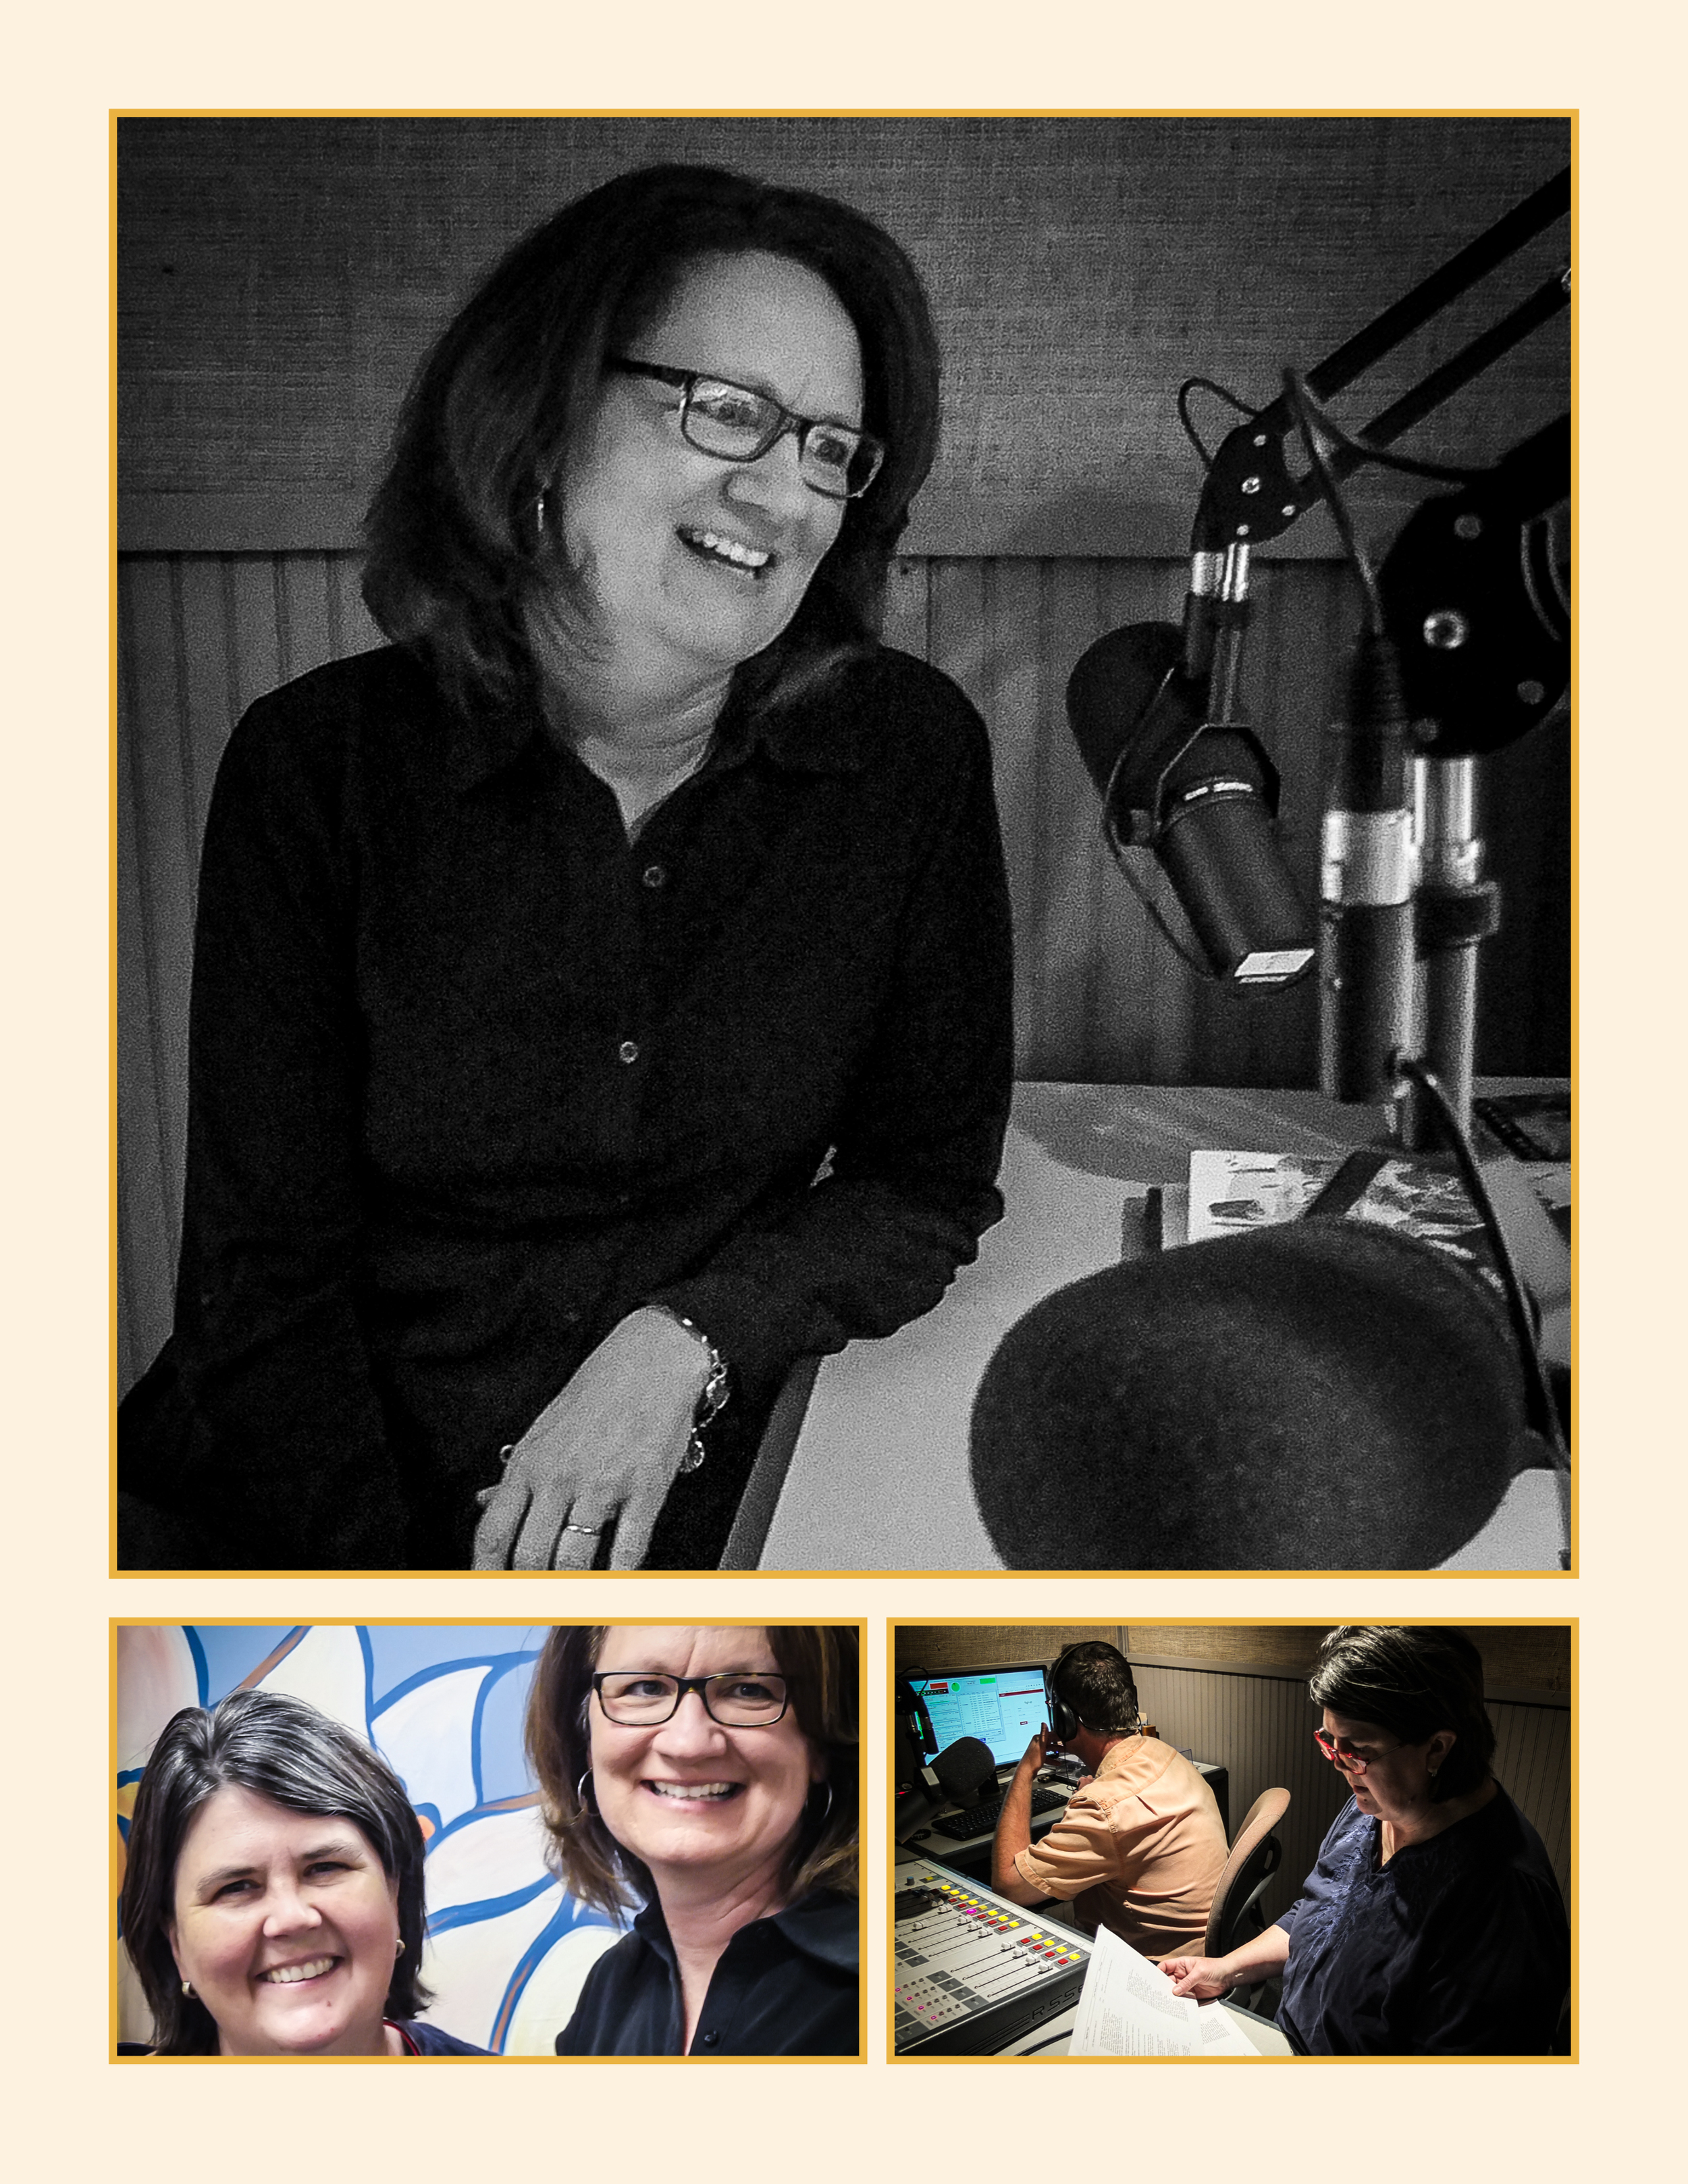 Top: Maggie Green in the WLXL studio. Bottom left, Ouita Michel and Maggie Green before the show. Bottom right, Chris and Ouita Michel prepare, with three minutes until showtime.